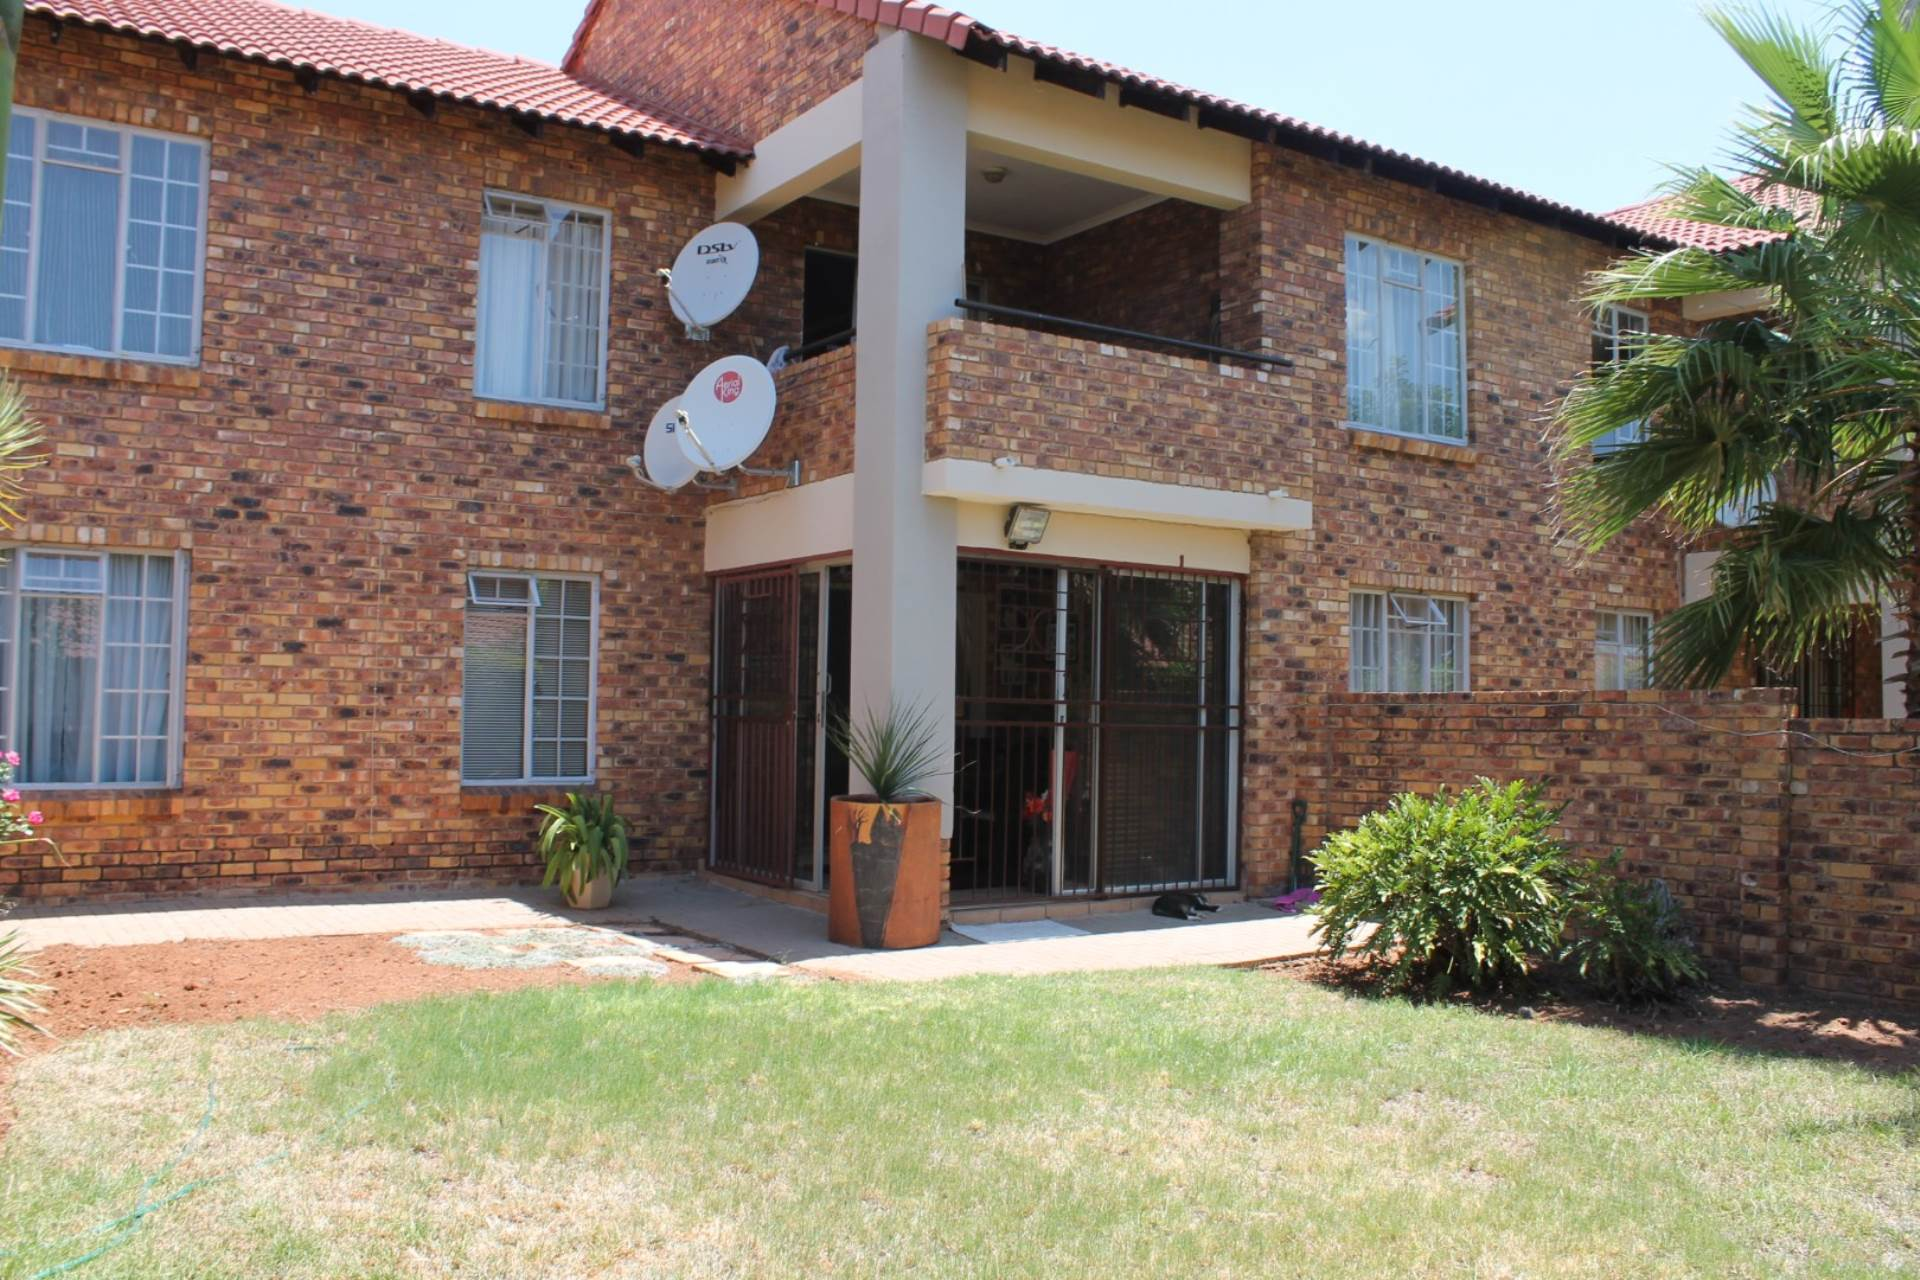 2 BedroomTownhouse For Sale In Theresapark